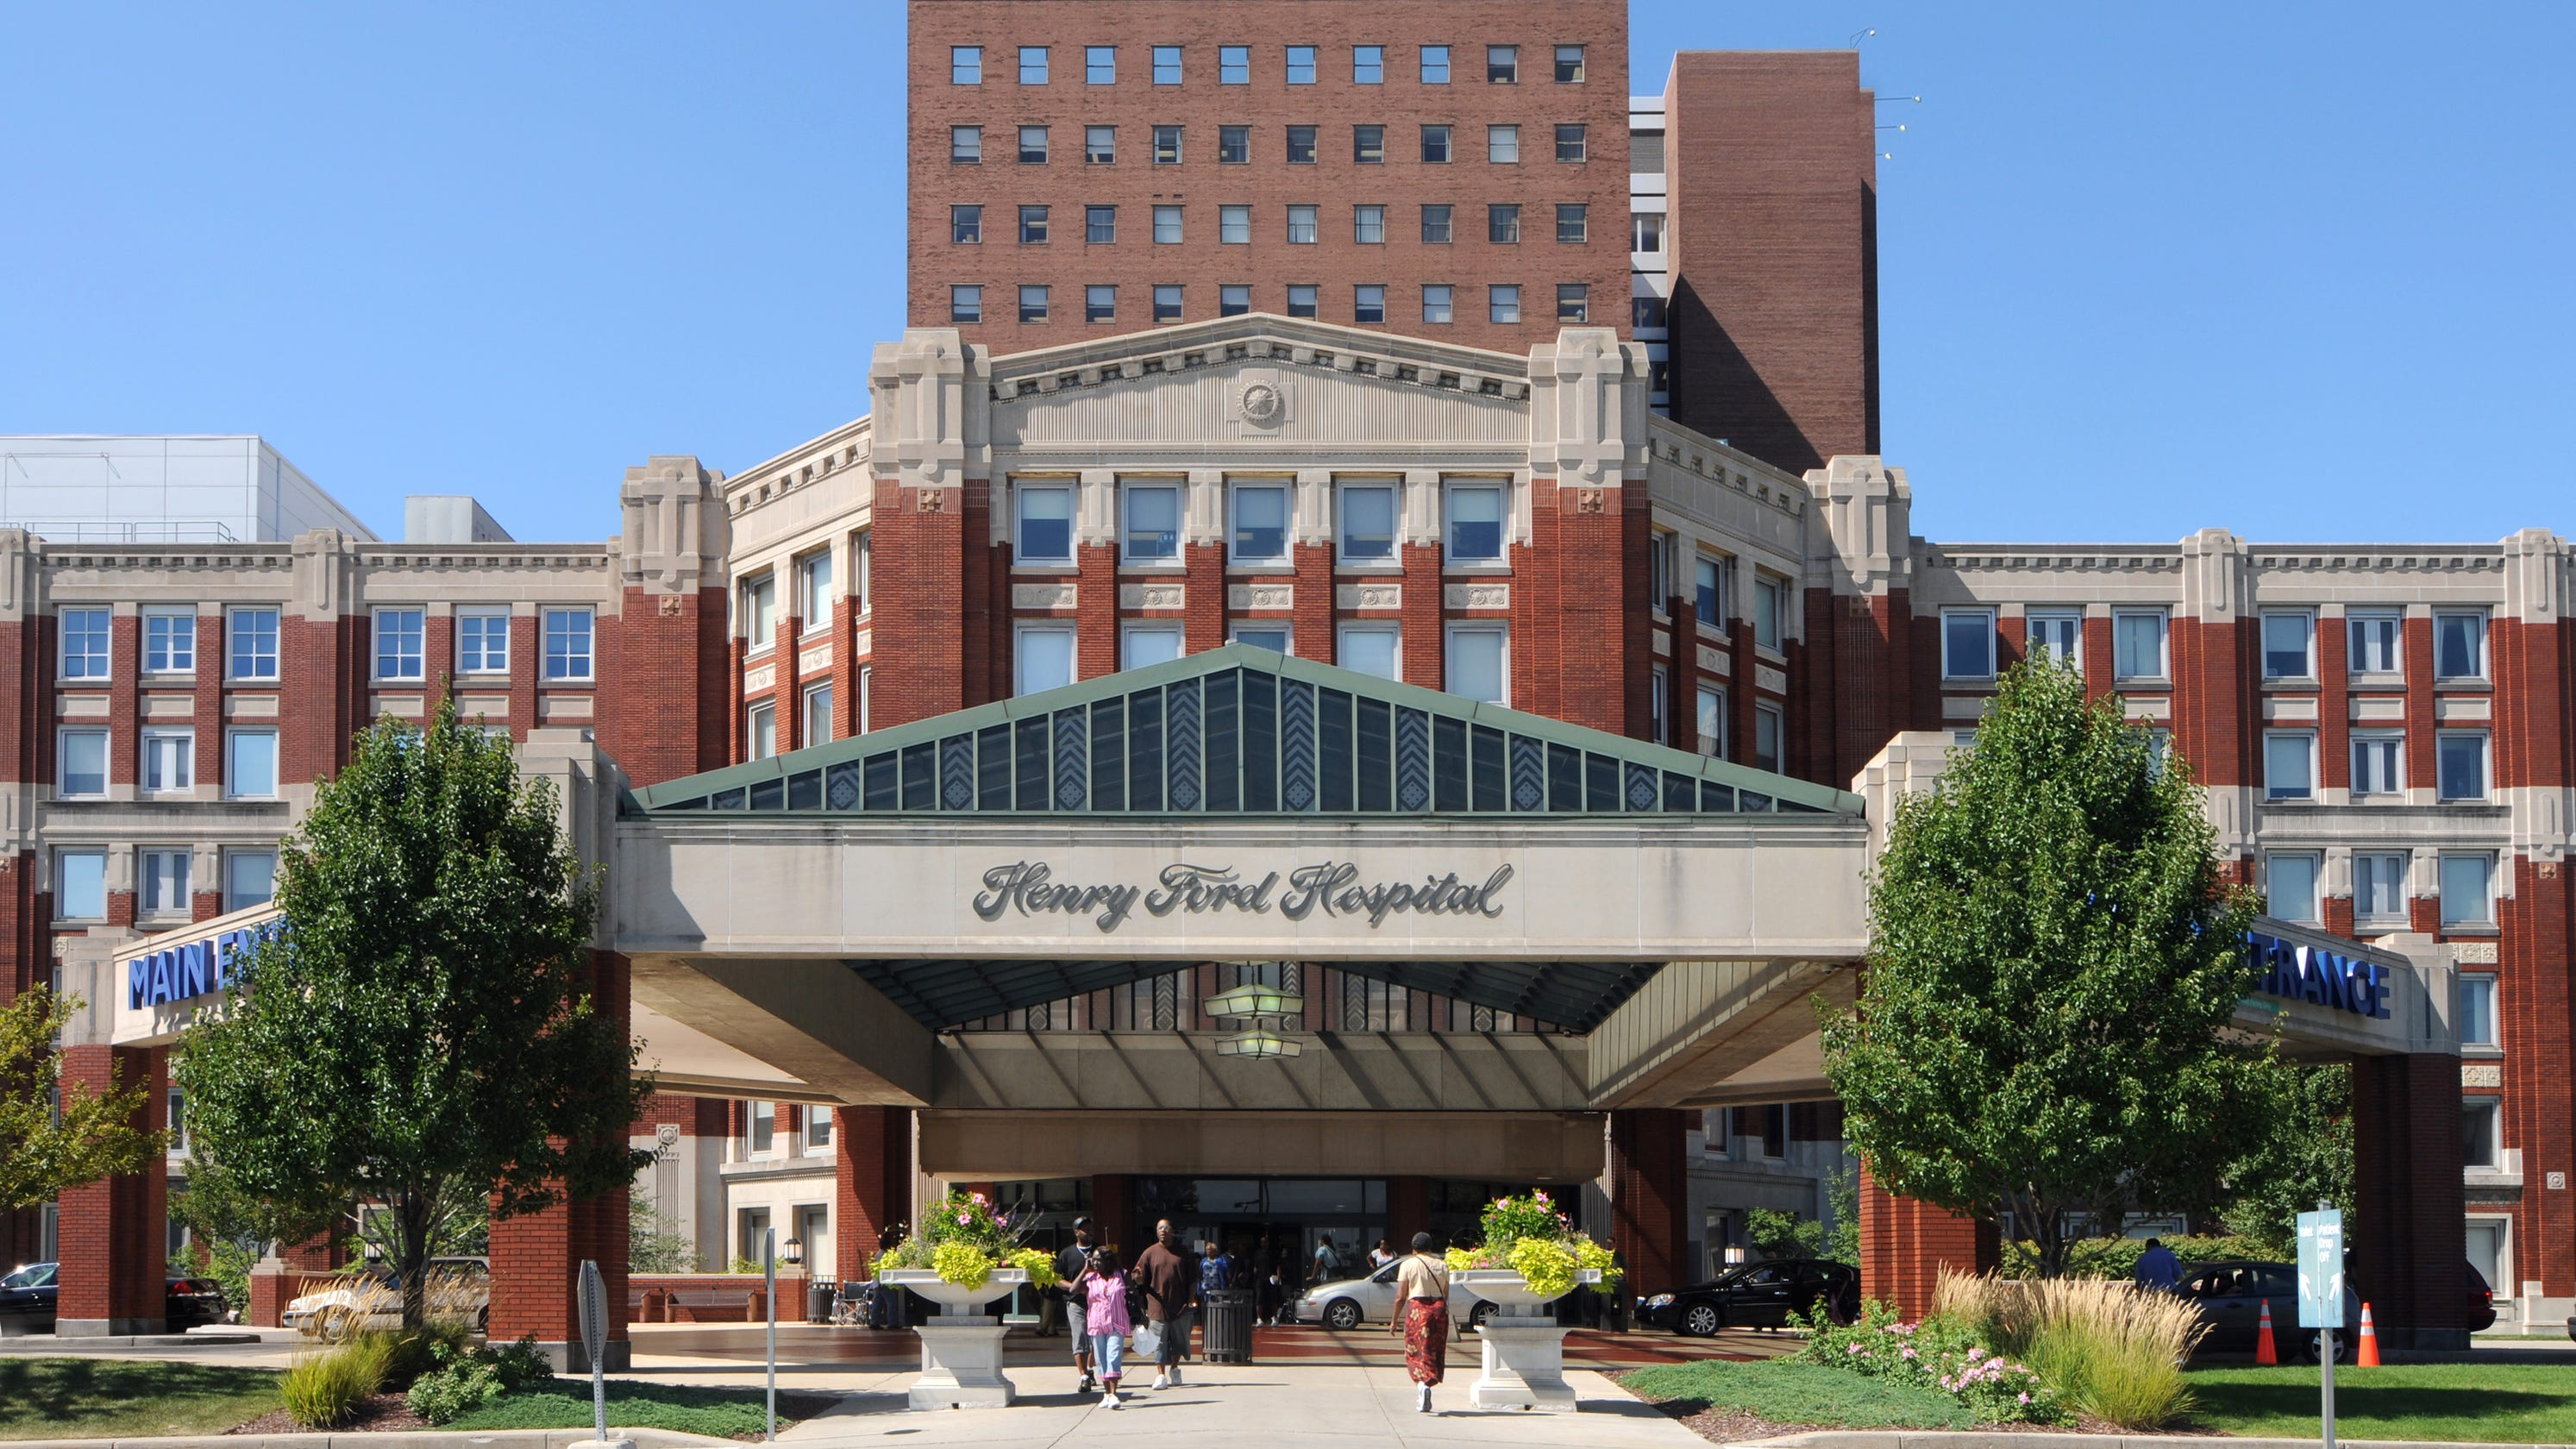 More than 700 Henry Ford Health System employees tested positive for coronavirus